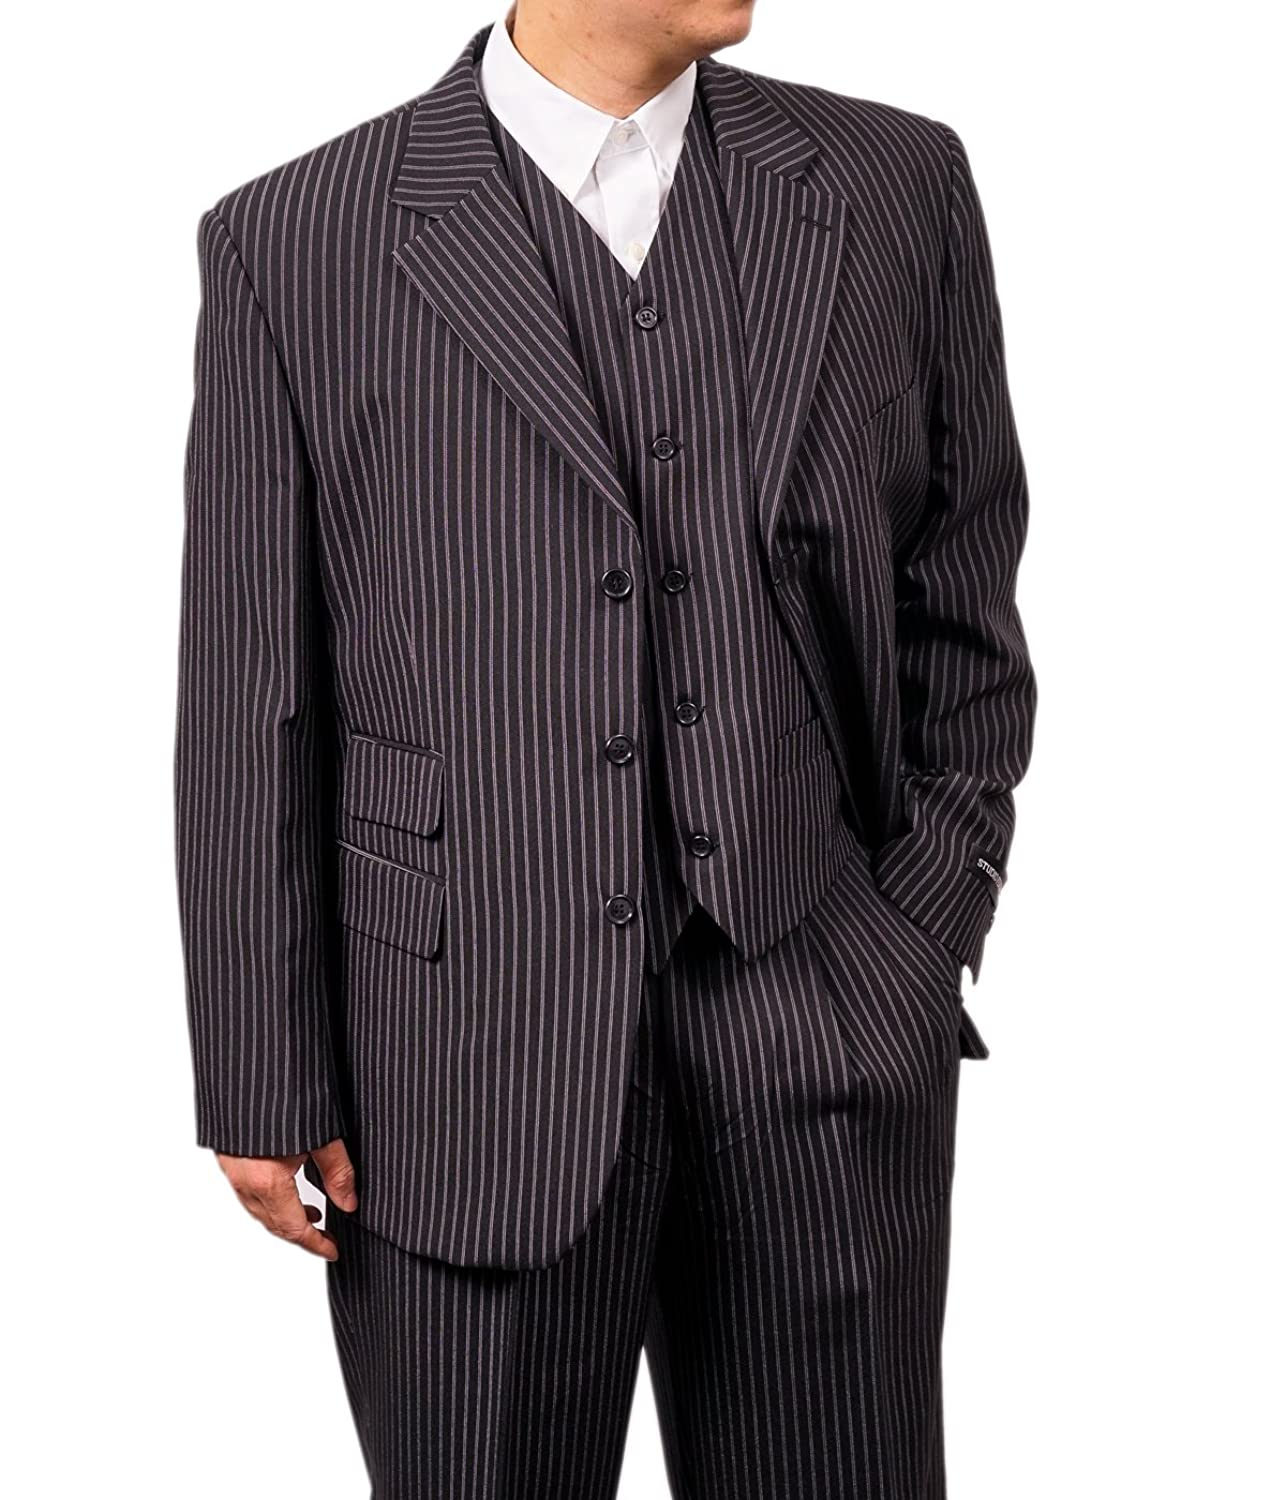 New 1940's Style Zoot Suits for Sale New Mens 3 Piece Black Gangster Pinstripe Dress Suit with Matching Vest $119.99 AT vintagedancer.com